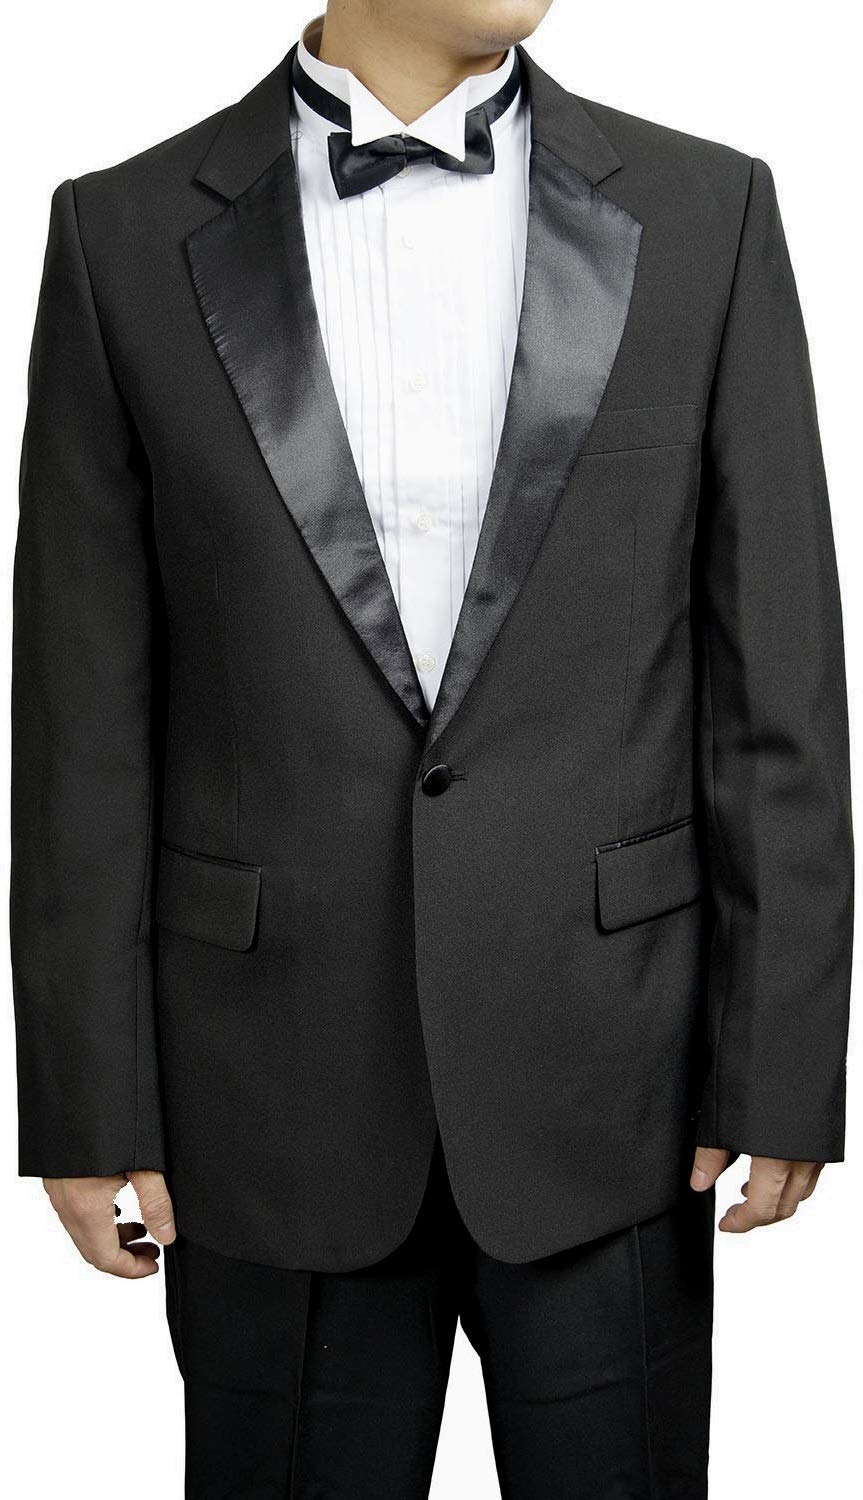 Broadway Tuxmakers Mens 1 Button Black Classic Notch Collar Tuxedo Jacket (48S) by Broadway Tuxmakers